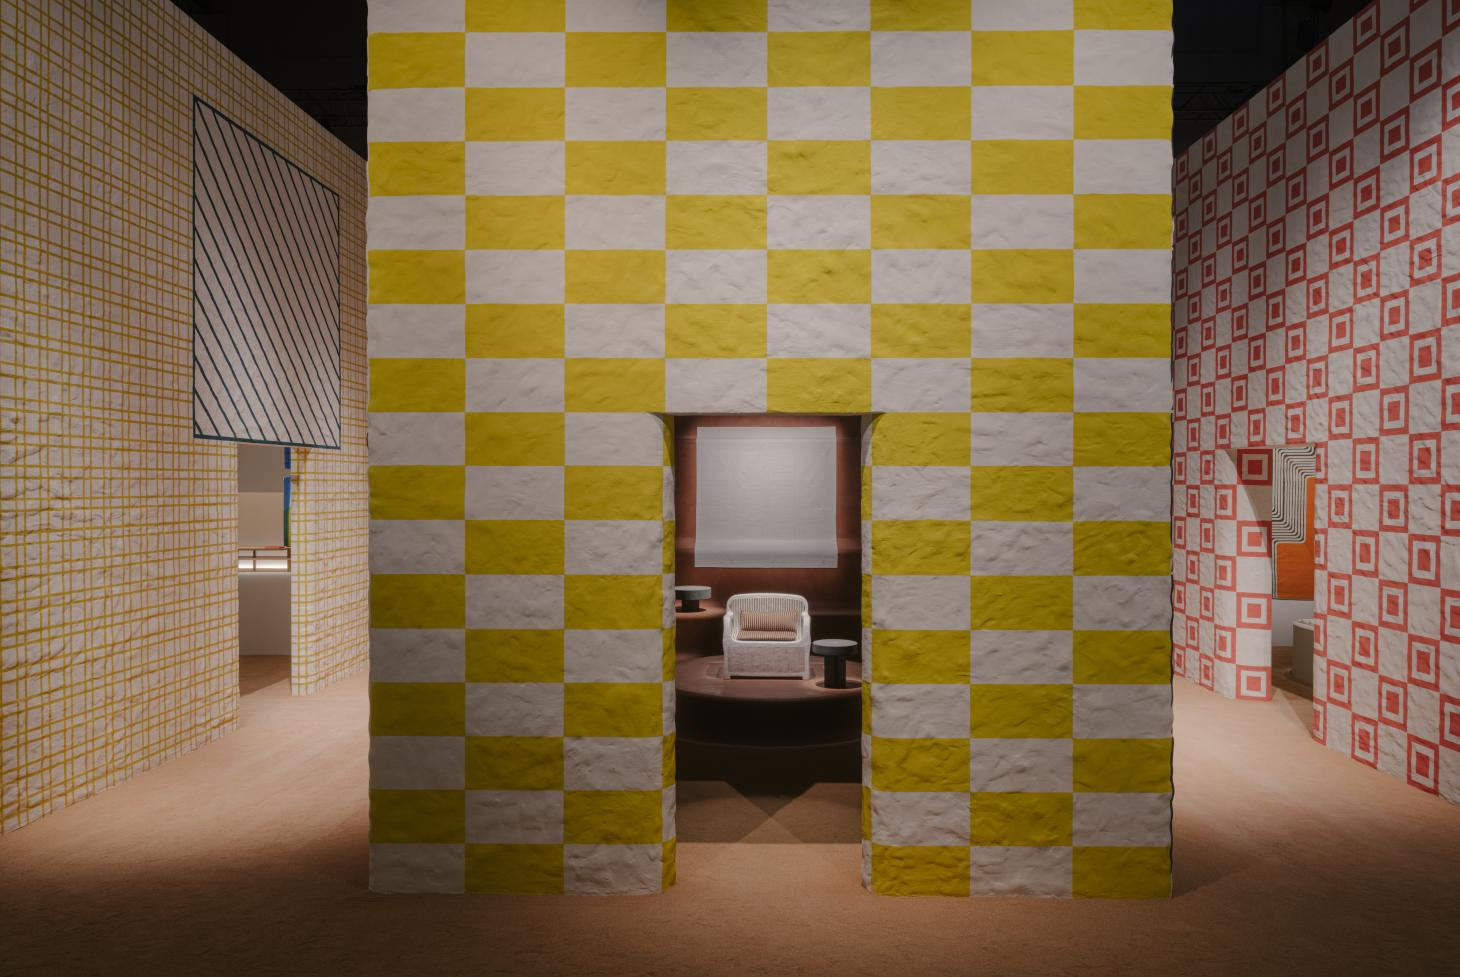 Hermes home collections at salone del mobile in Milan shown inside lime plaster structures with striped surfaces